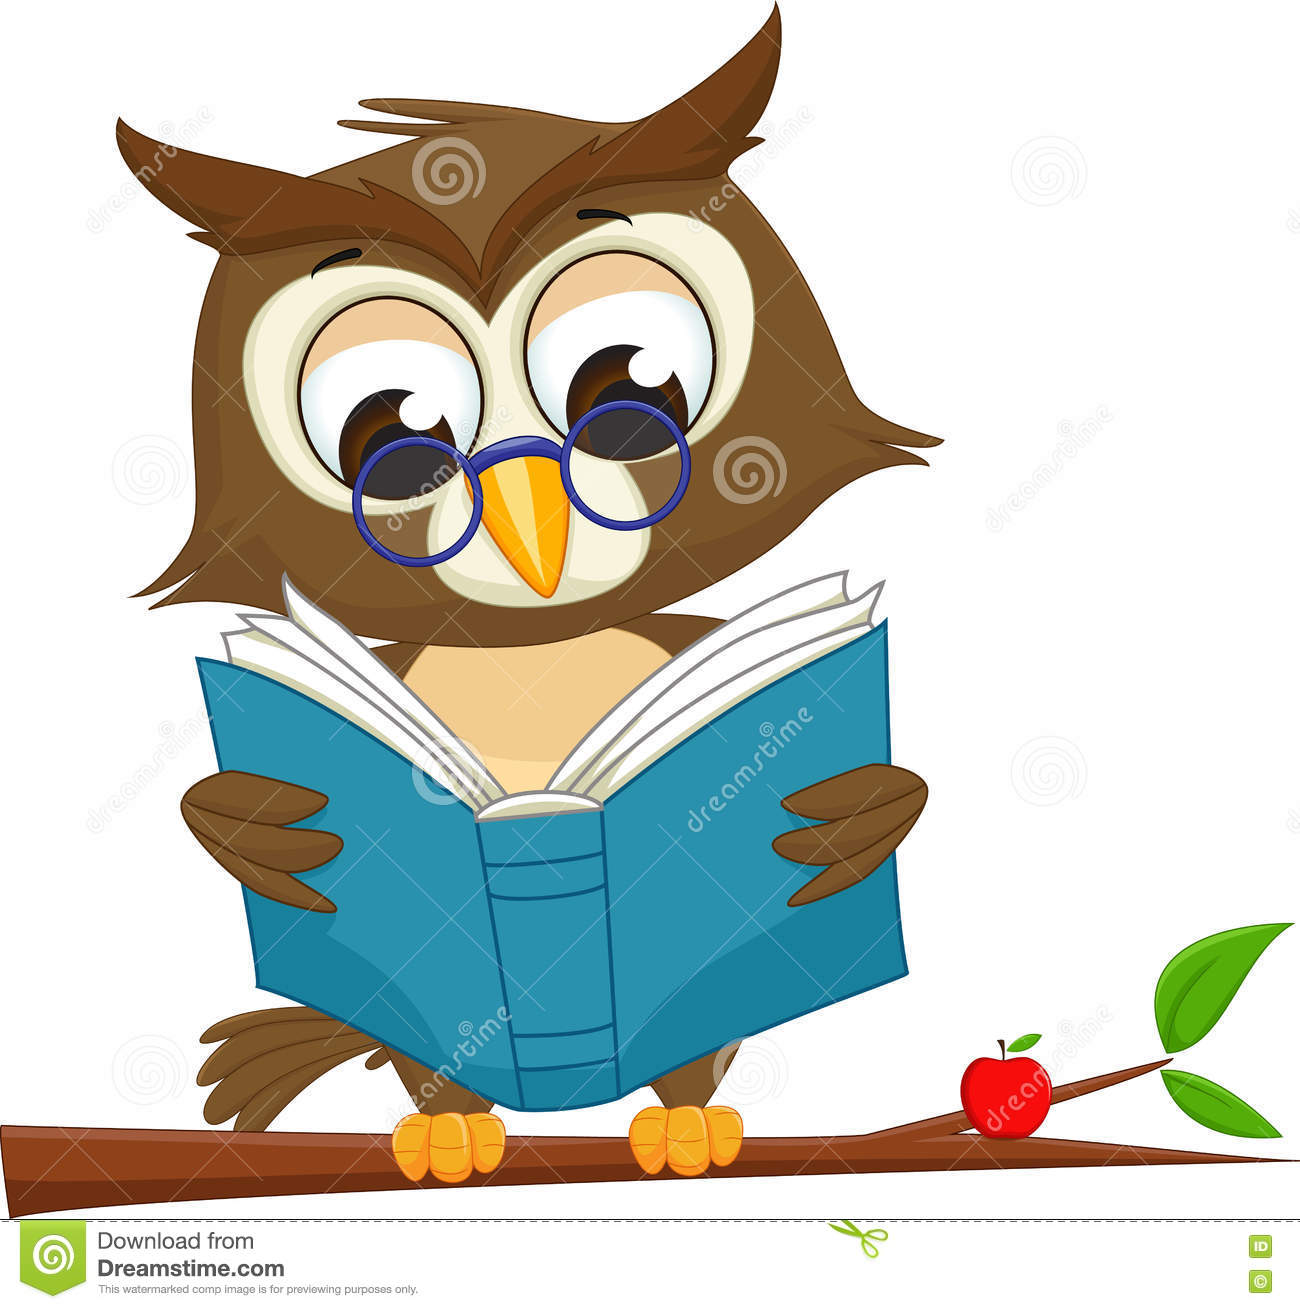 Todd Clipart 20 Fee Cliparts Download Imagenes: Owl Reading A Book On Tree Branch Stock Vector